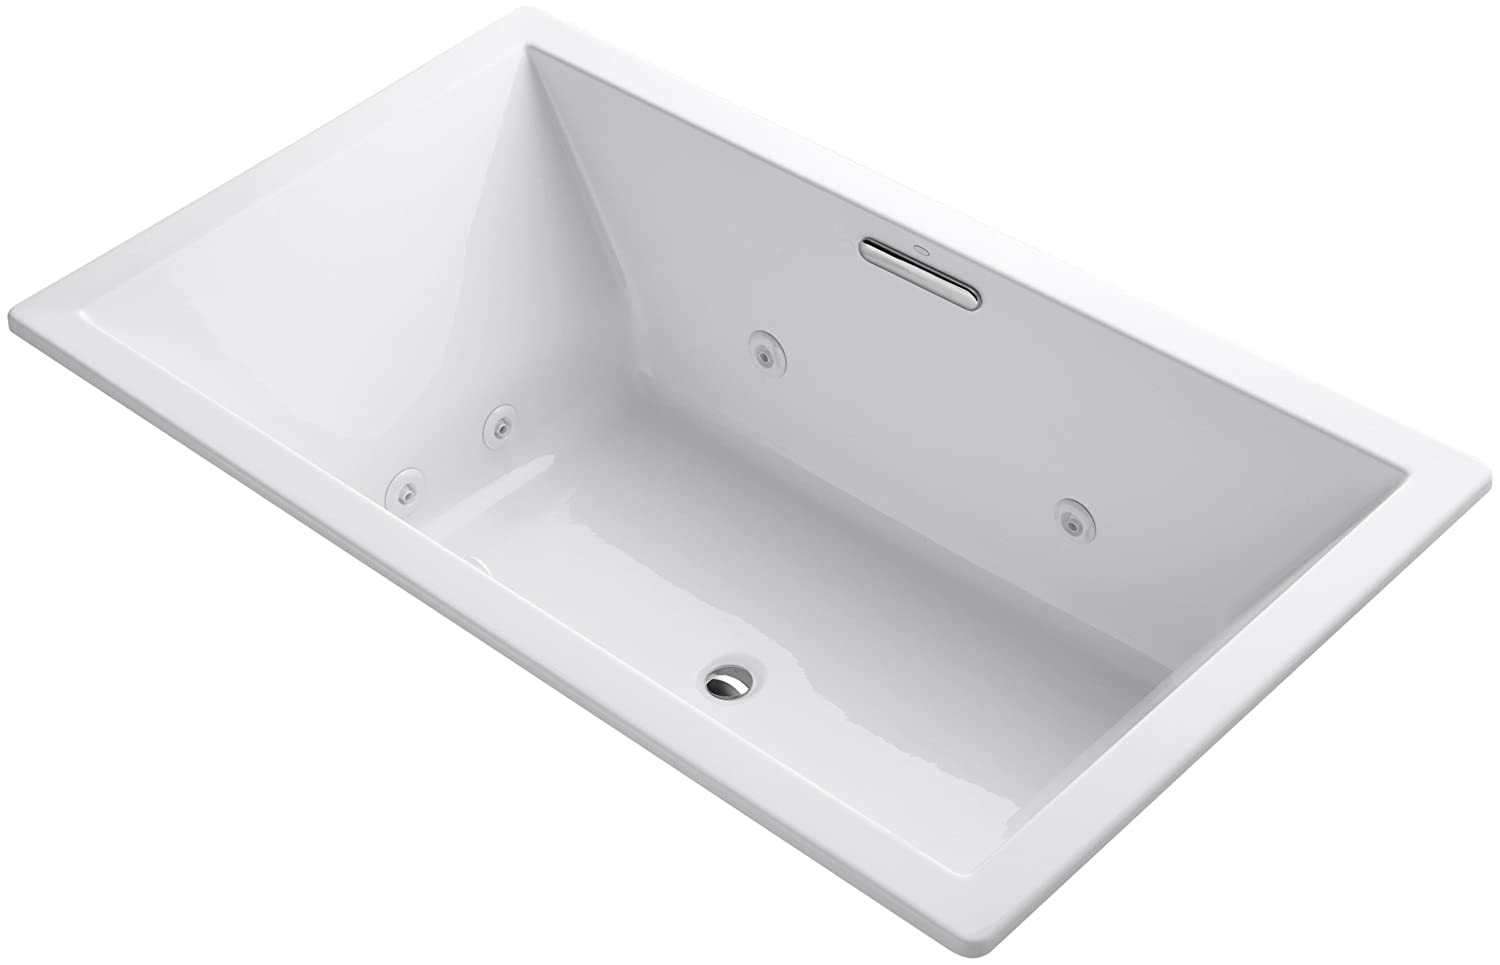 tubs design reviews collection pictures jacuzzi repair on ideas wells tile archer contemporary as plus graff with and bathroom whirl mat modern joyous together tub shower lowes faucets picture ing kohler